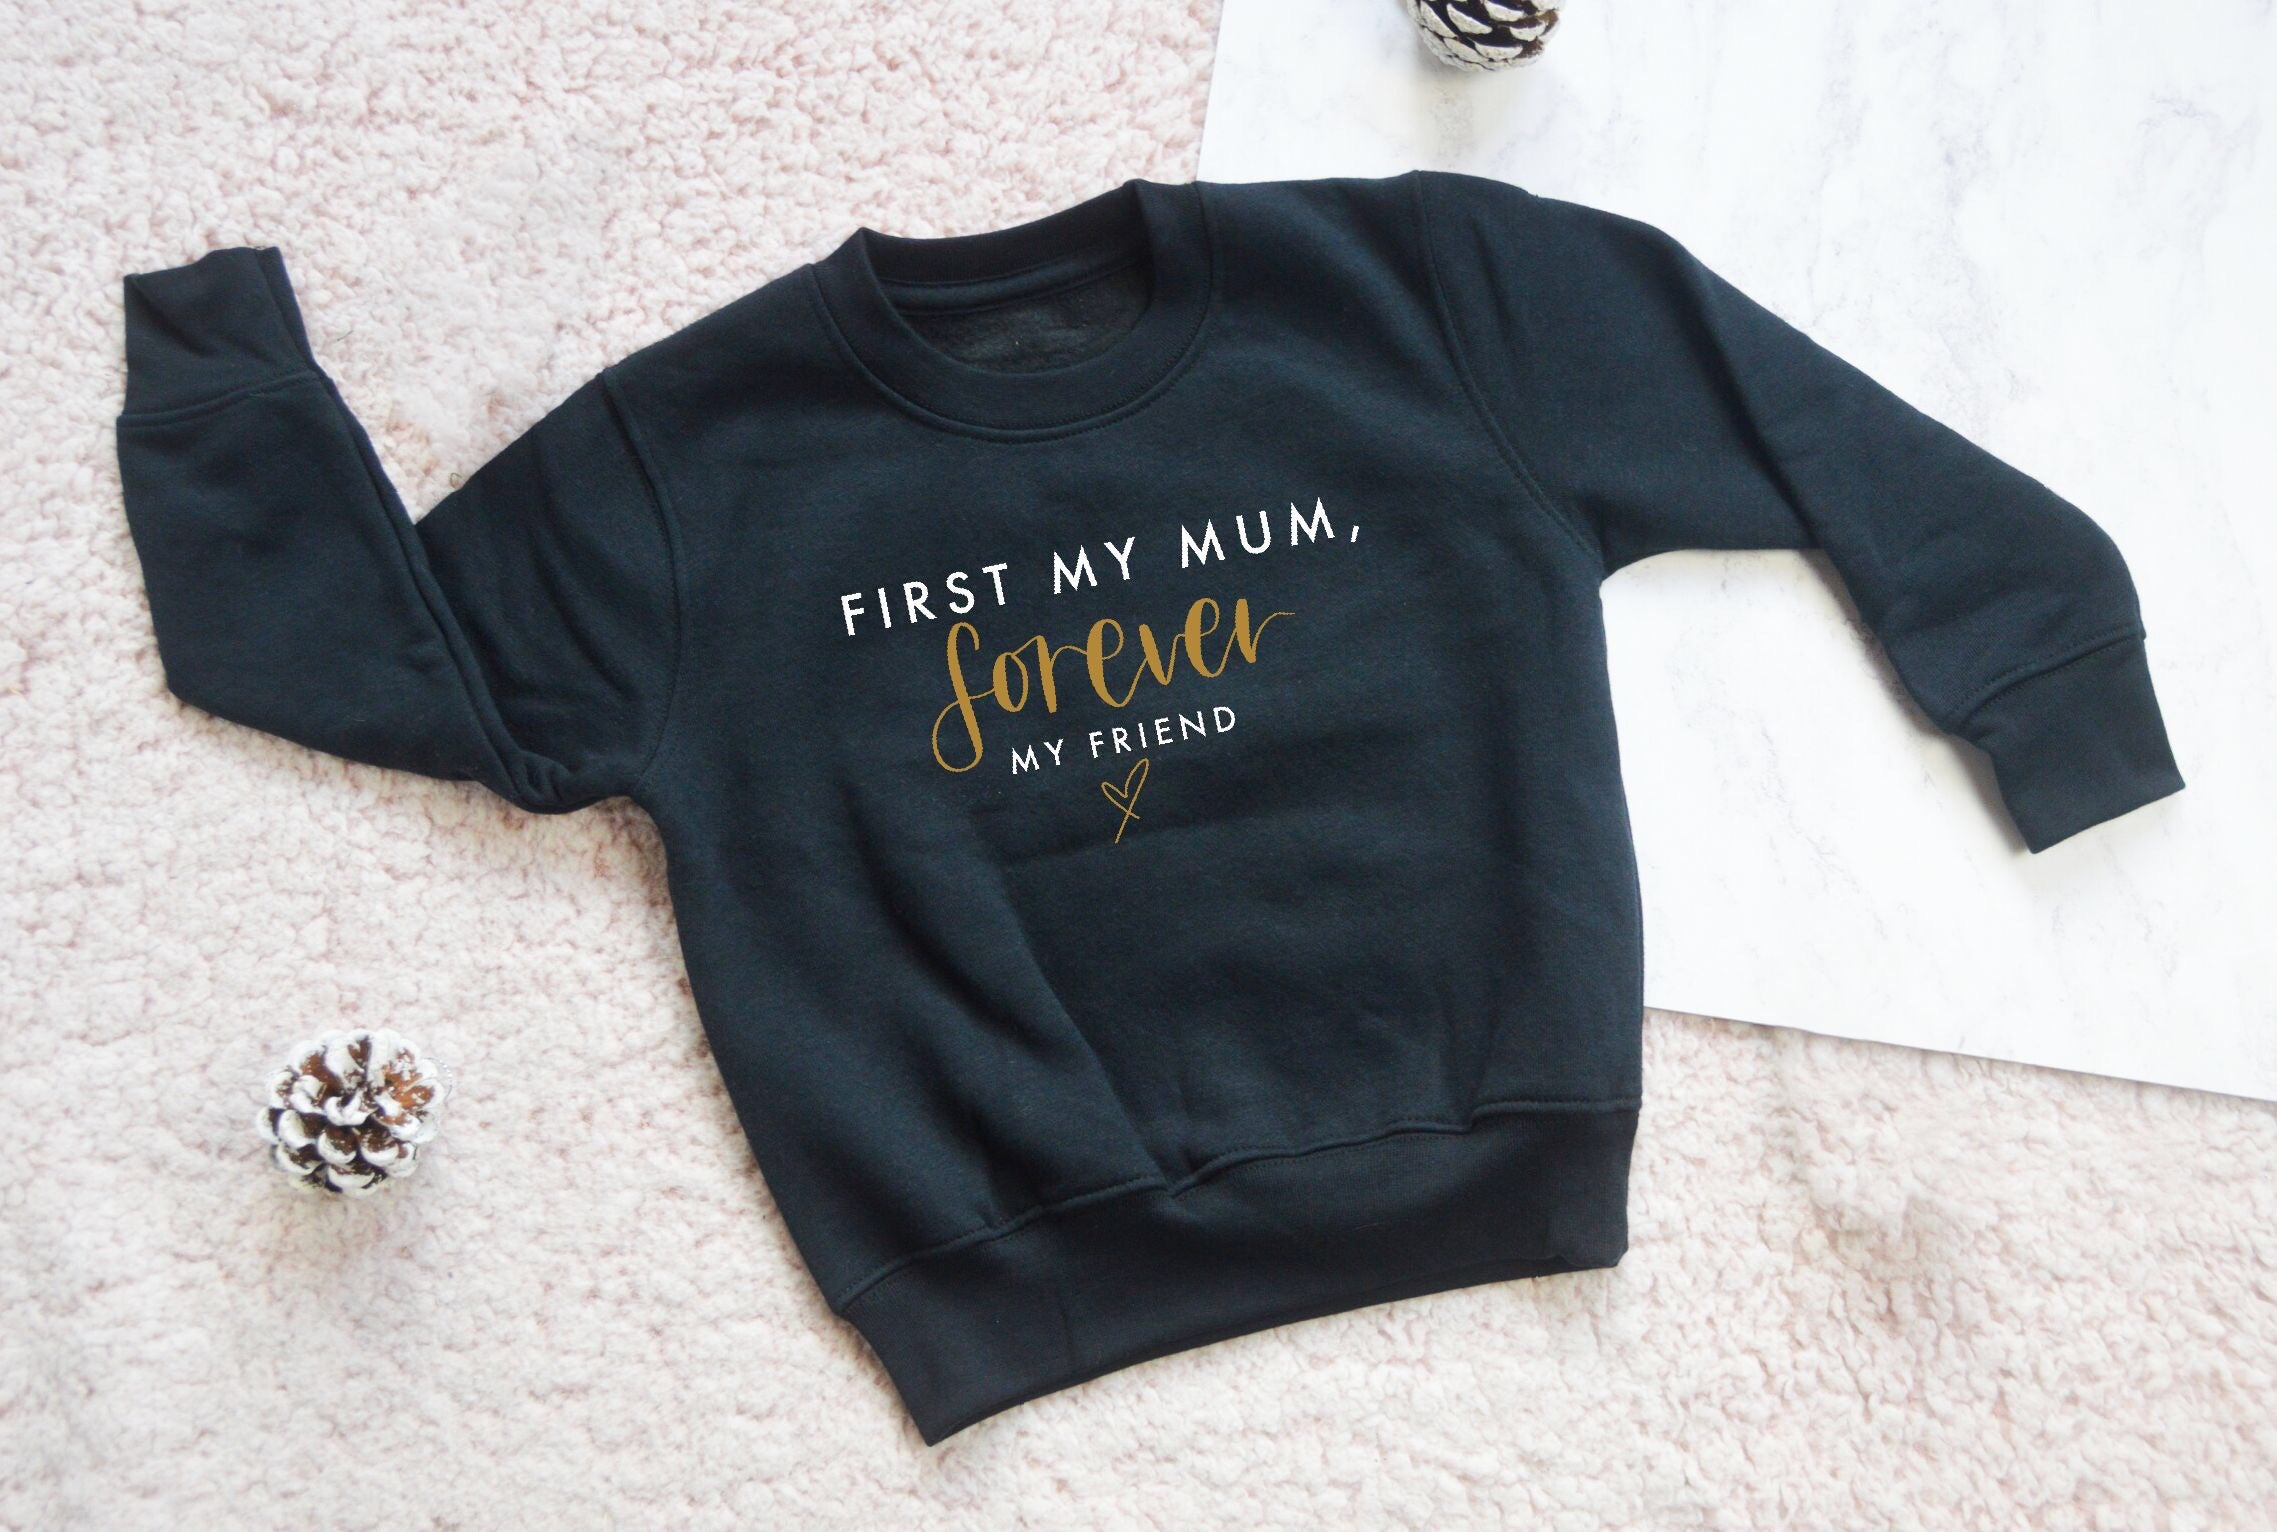 First my Mum, Forever my Friend Sweatshirt - You Make My Dreams